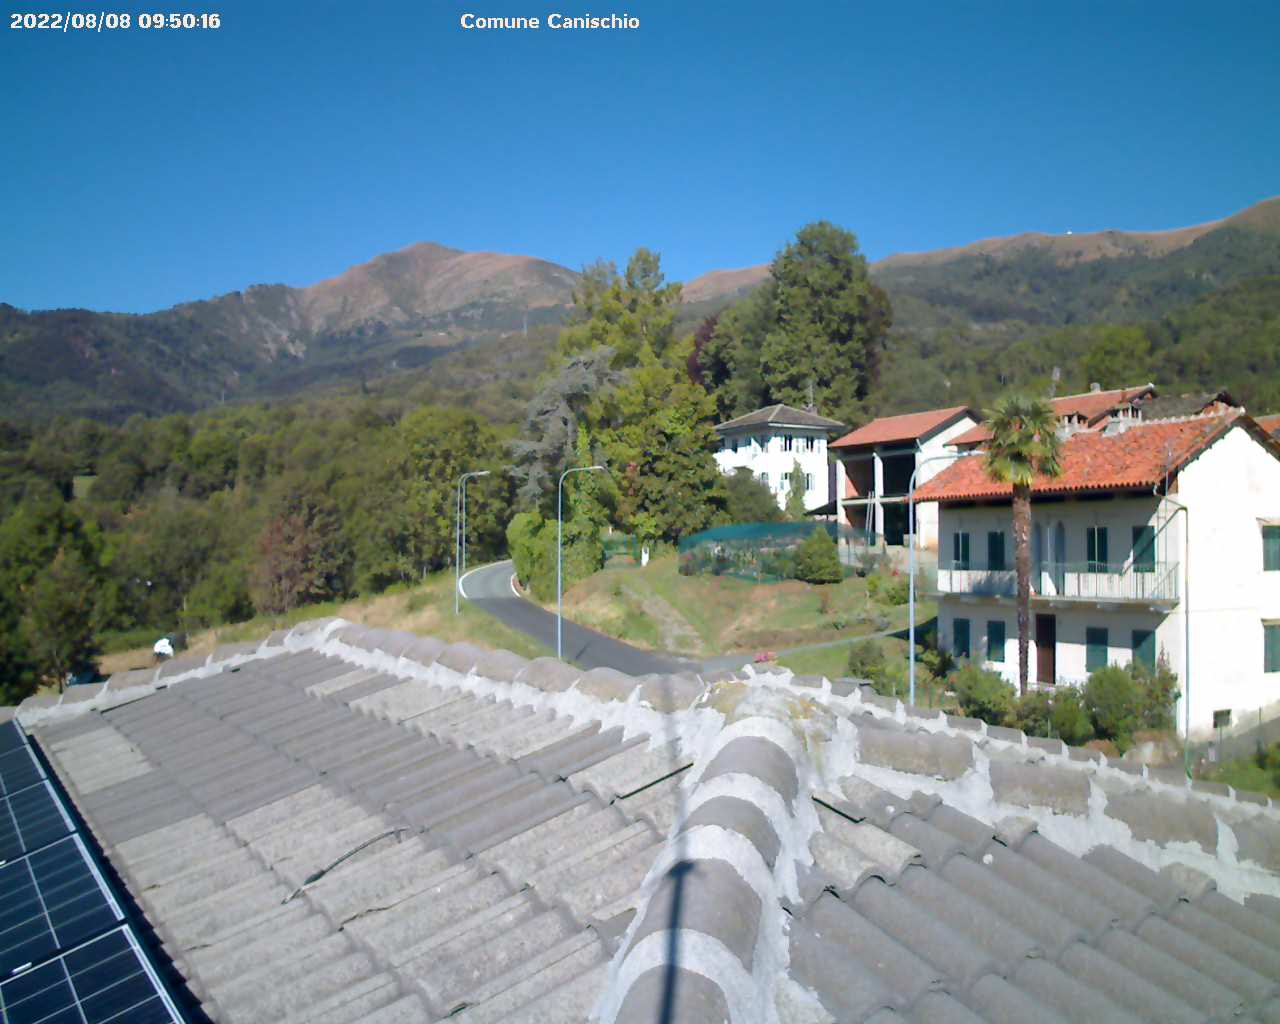 Comune di Canischio - webcam